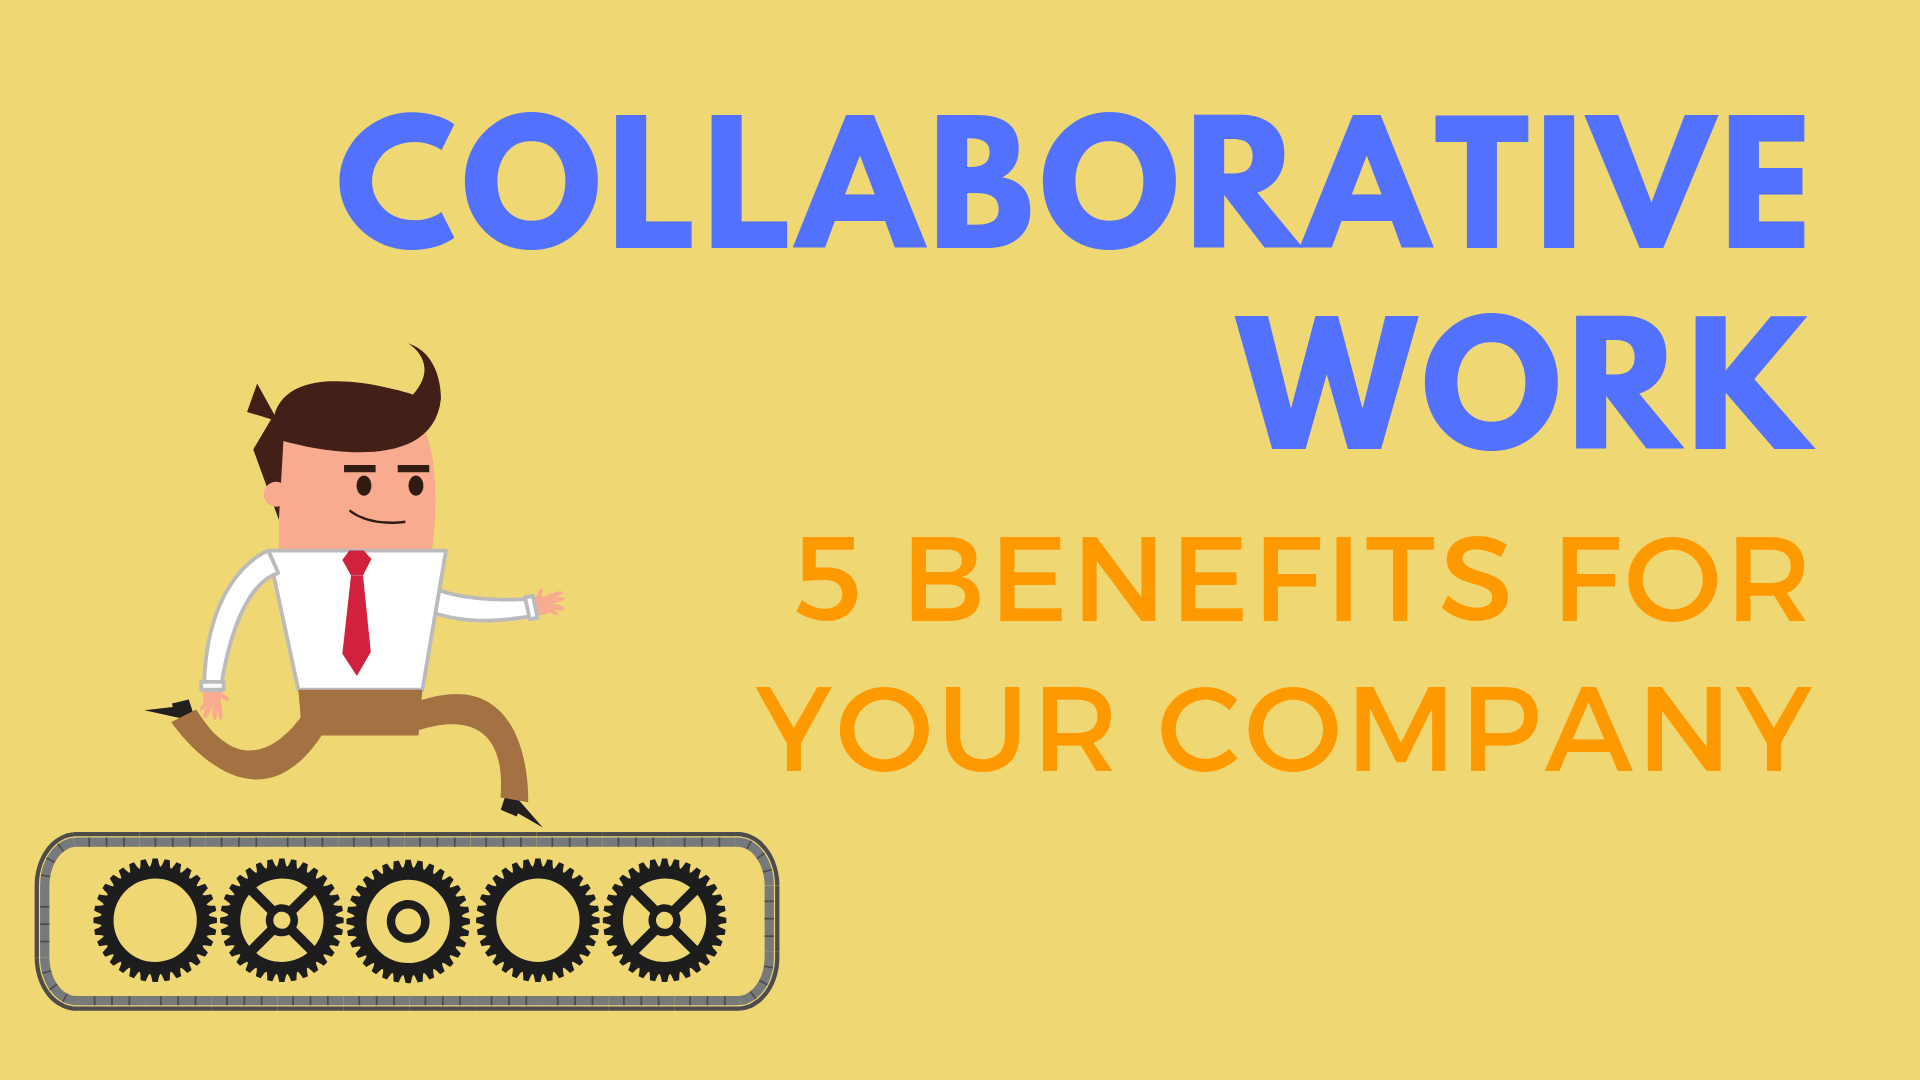 collaborative work - 5 benefits for your company